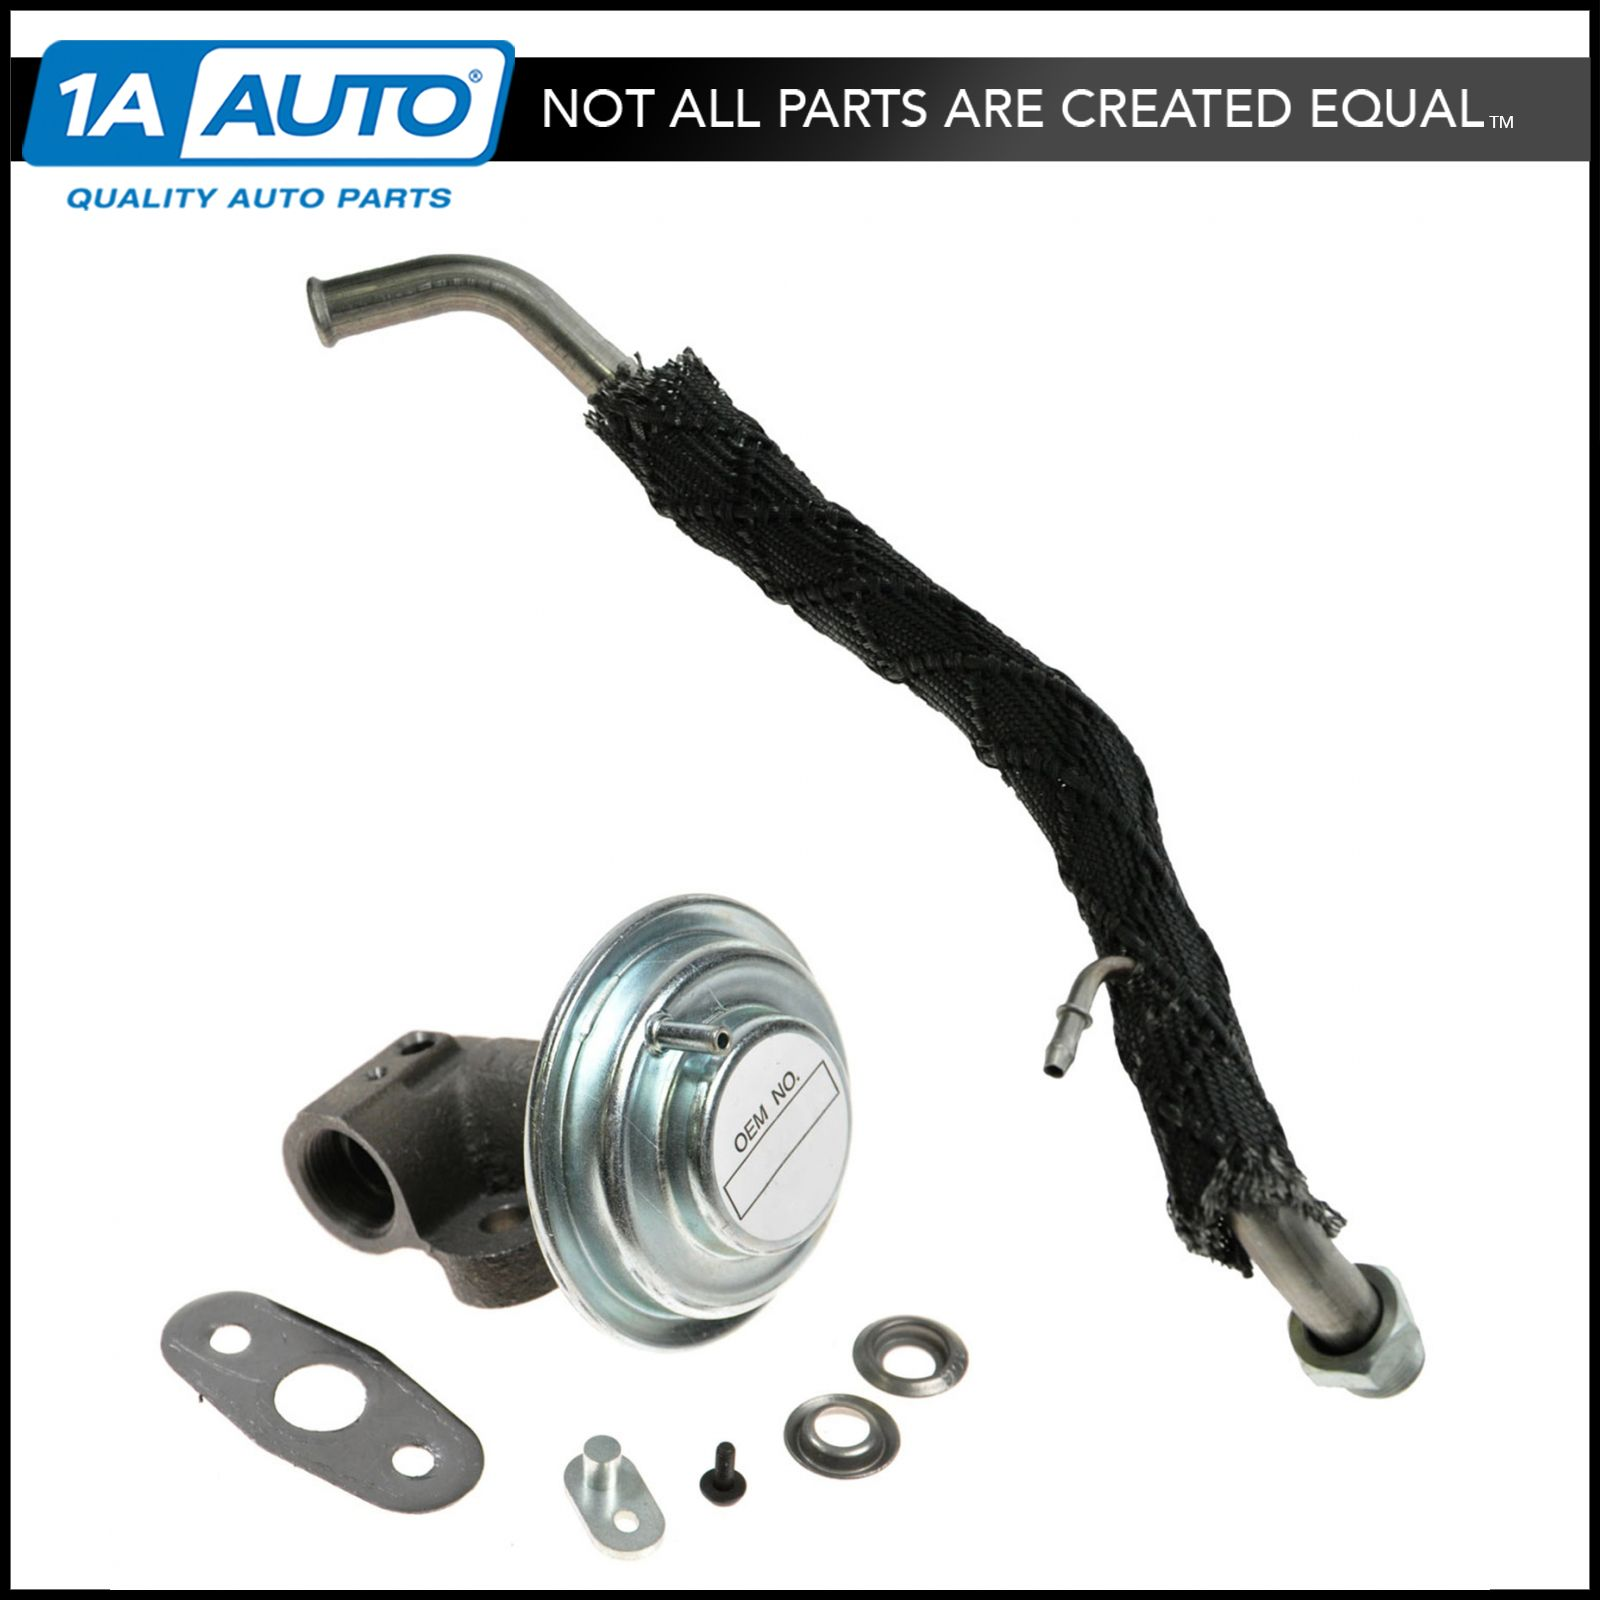 Emissions egr tube and valve for ford mercury